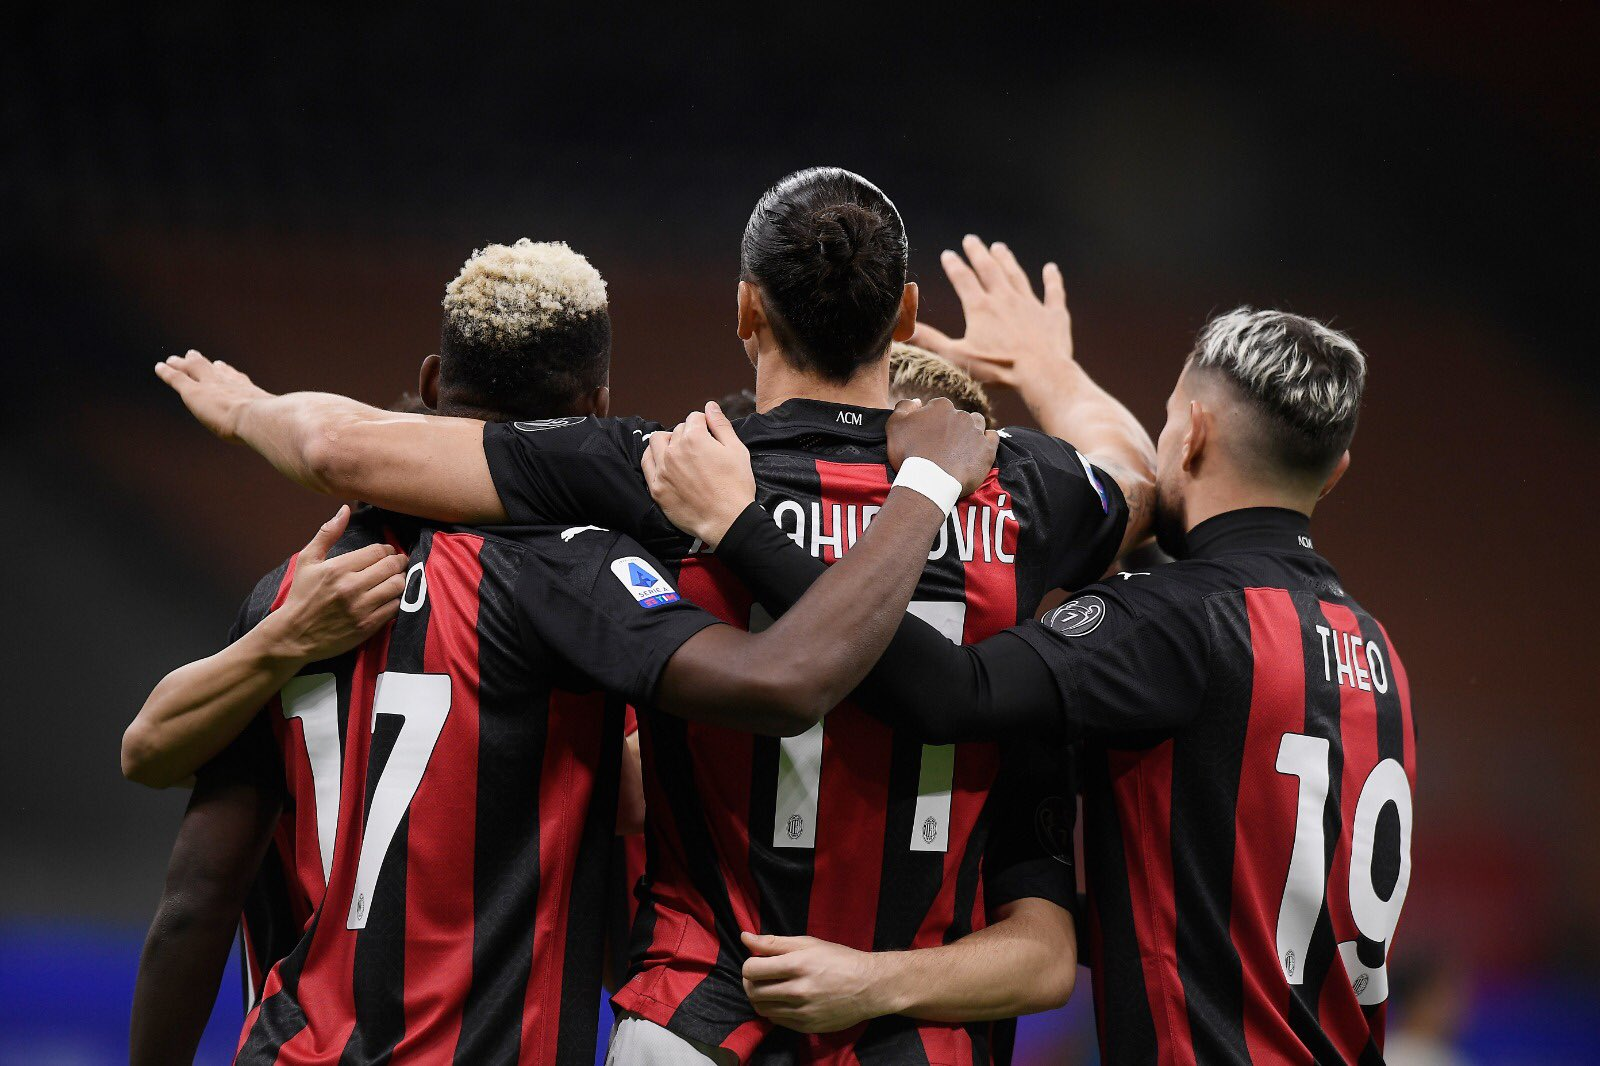 Ibra's brace propels Milan - the Swede among the least satisfied after Roma draw. - Bóng Đá